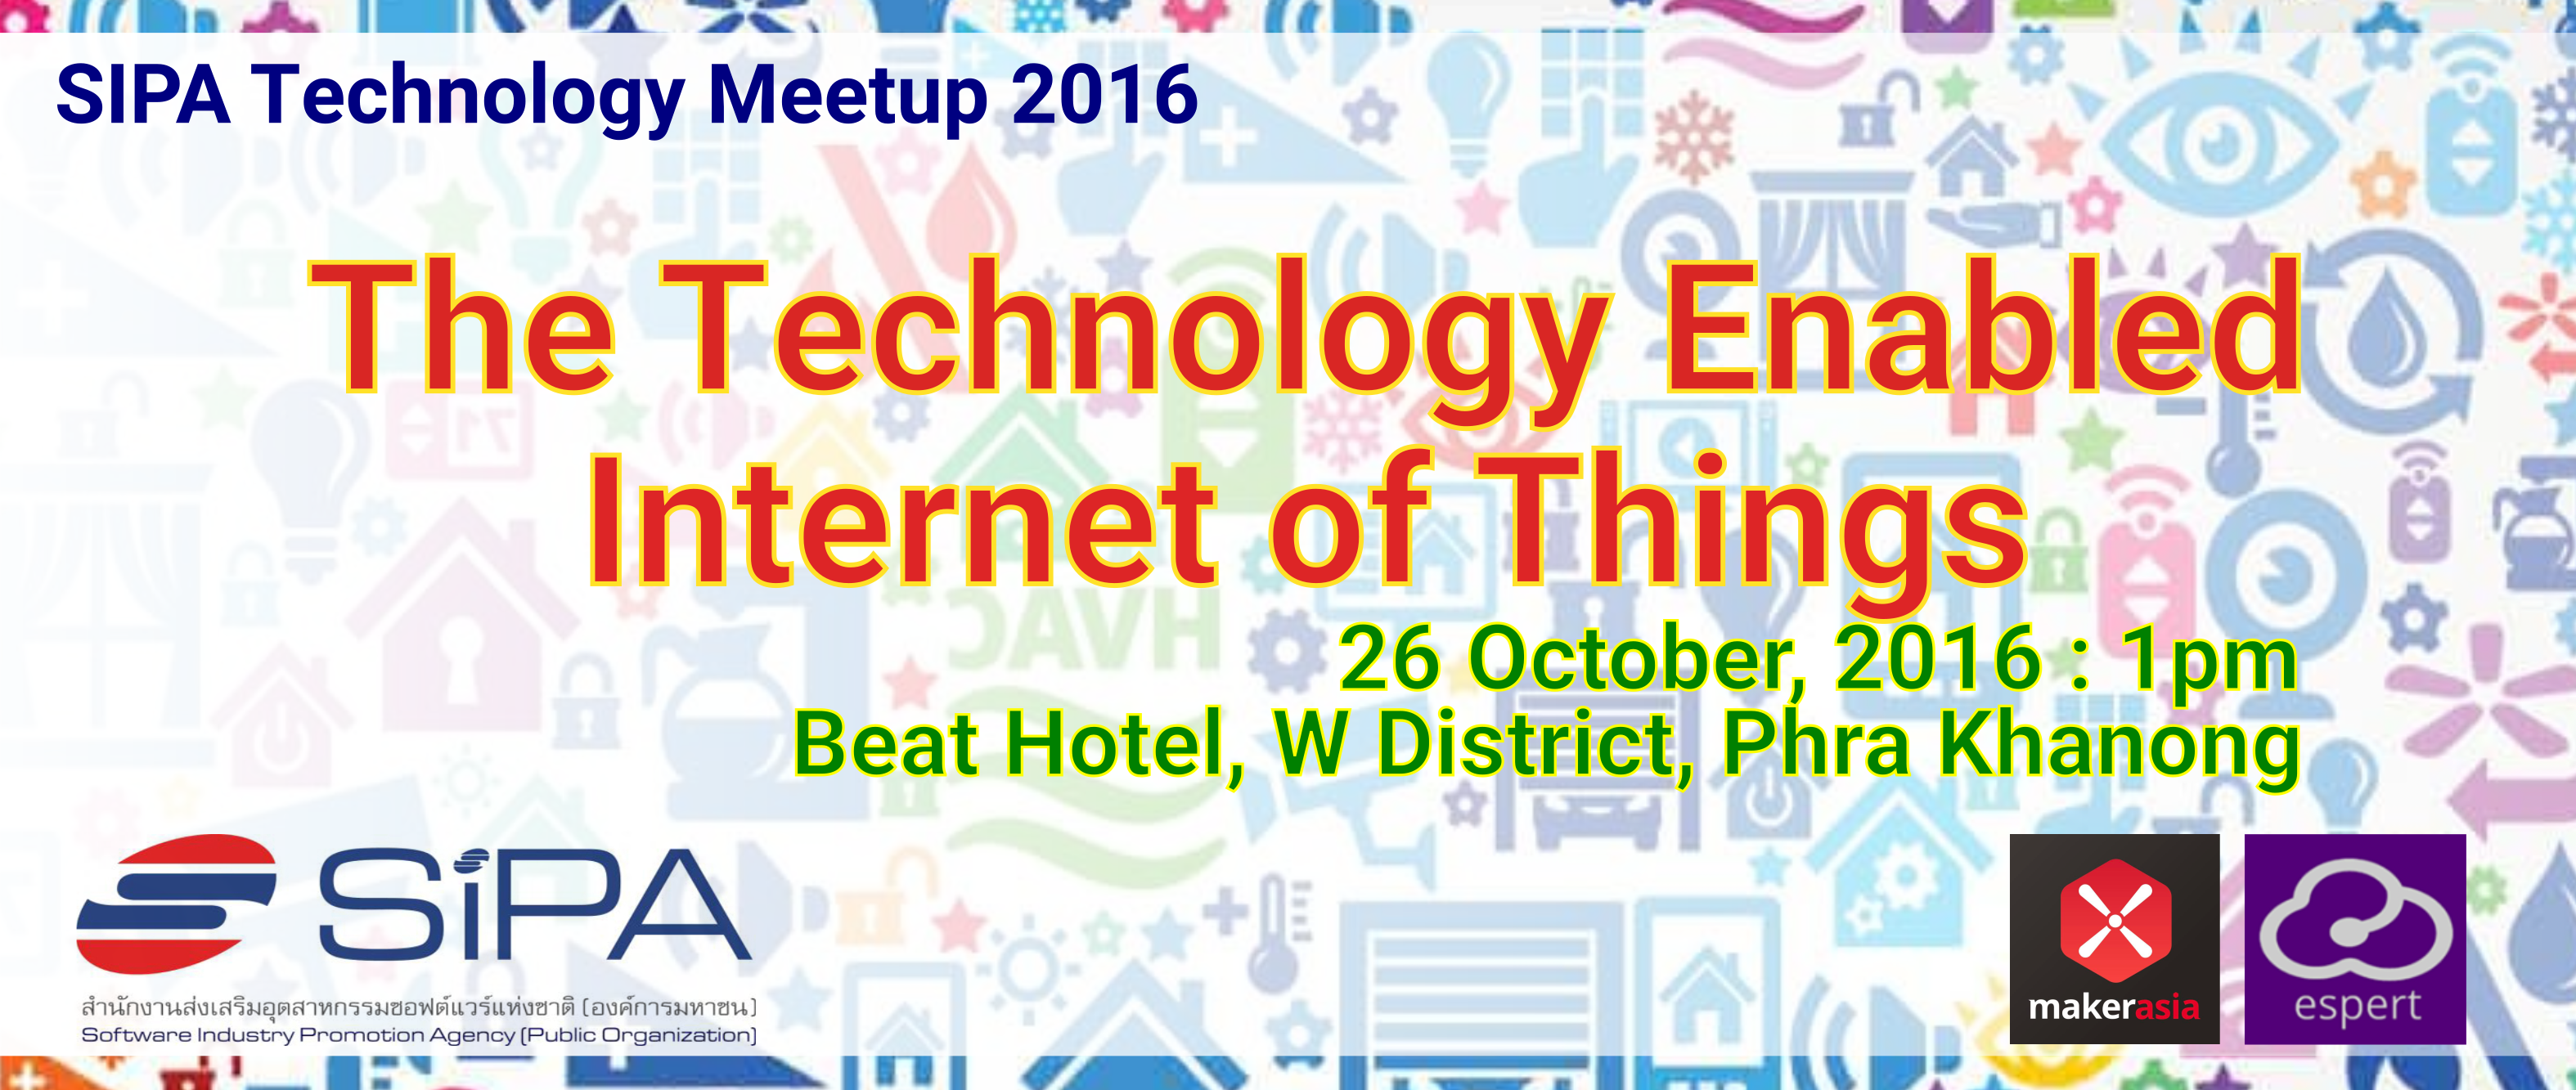 SIPA Technology Meetup 2016 #8